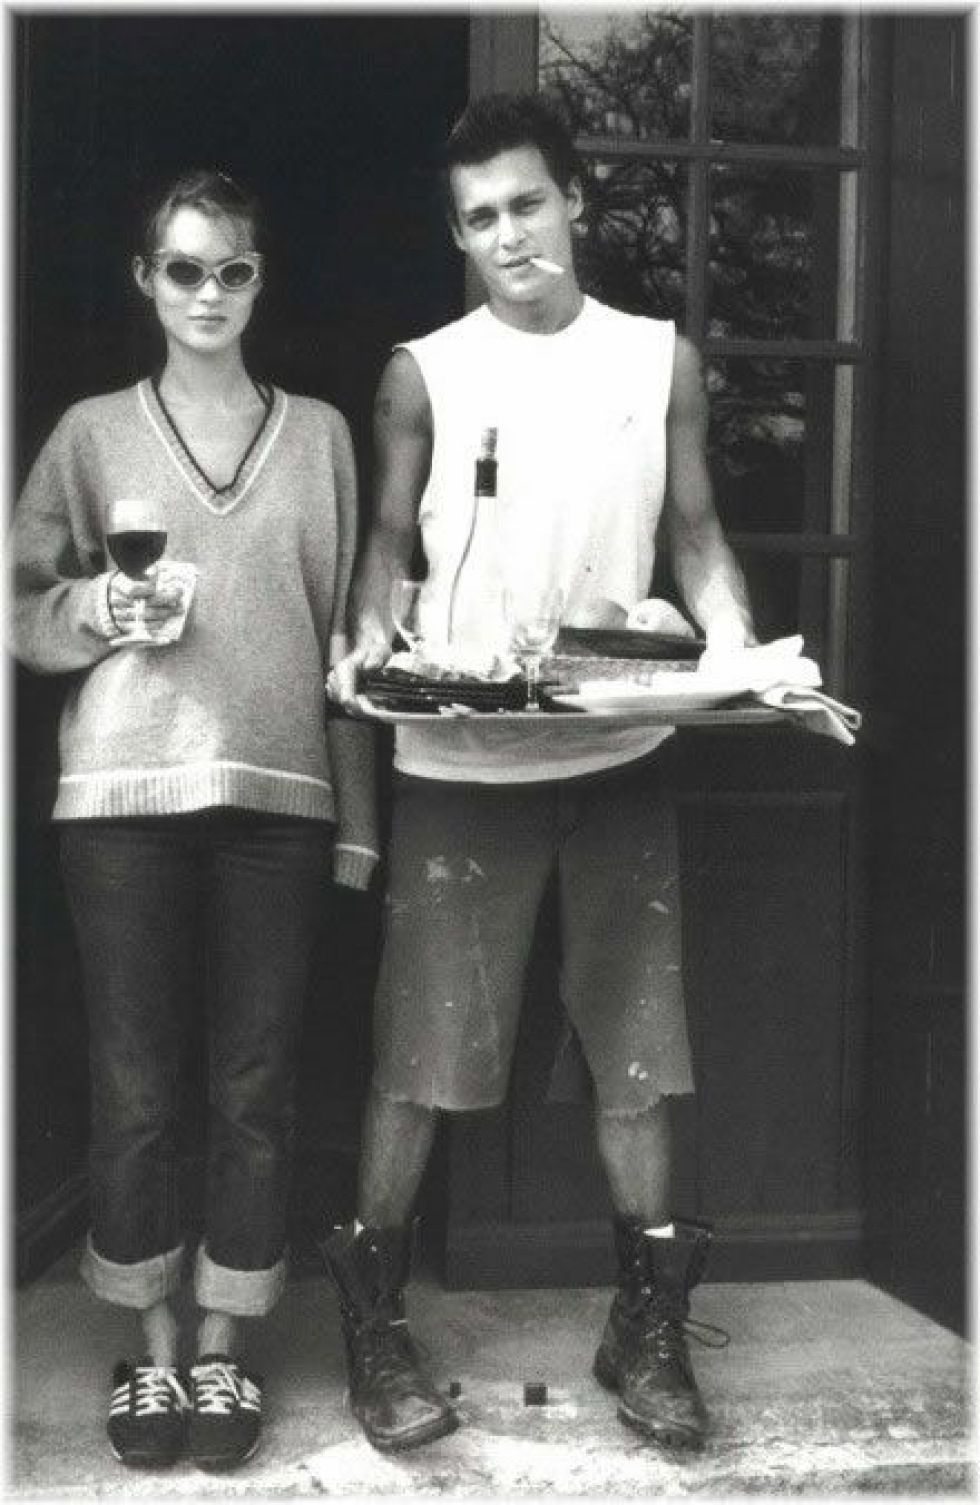 Johnny depp + kate moss #back in the day